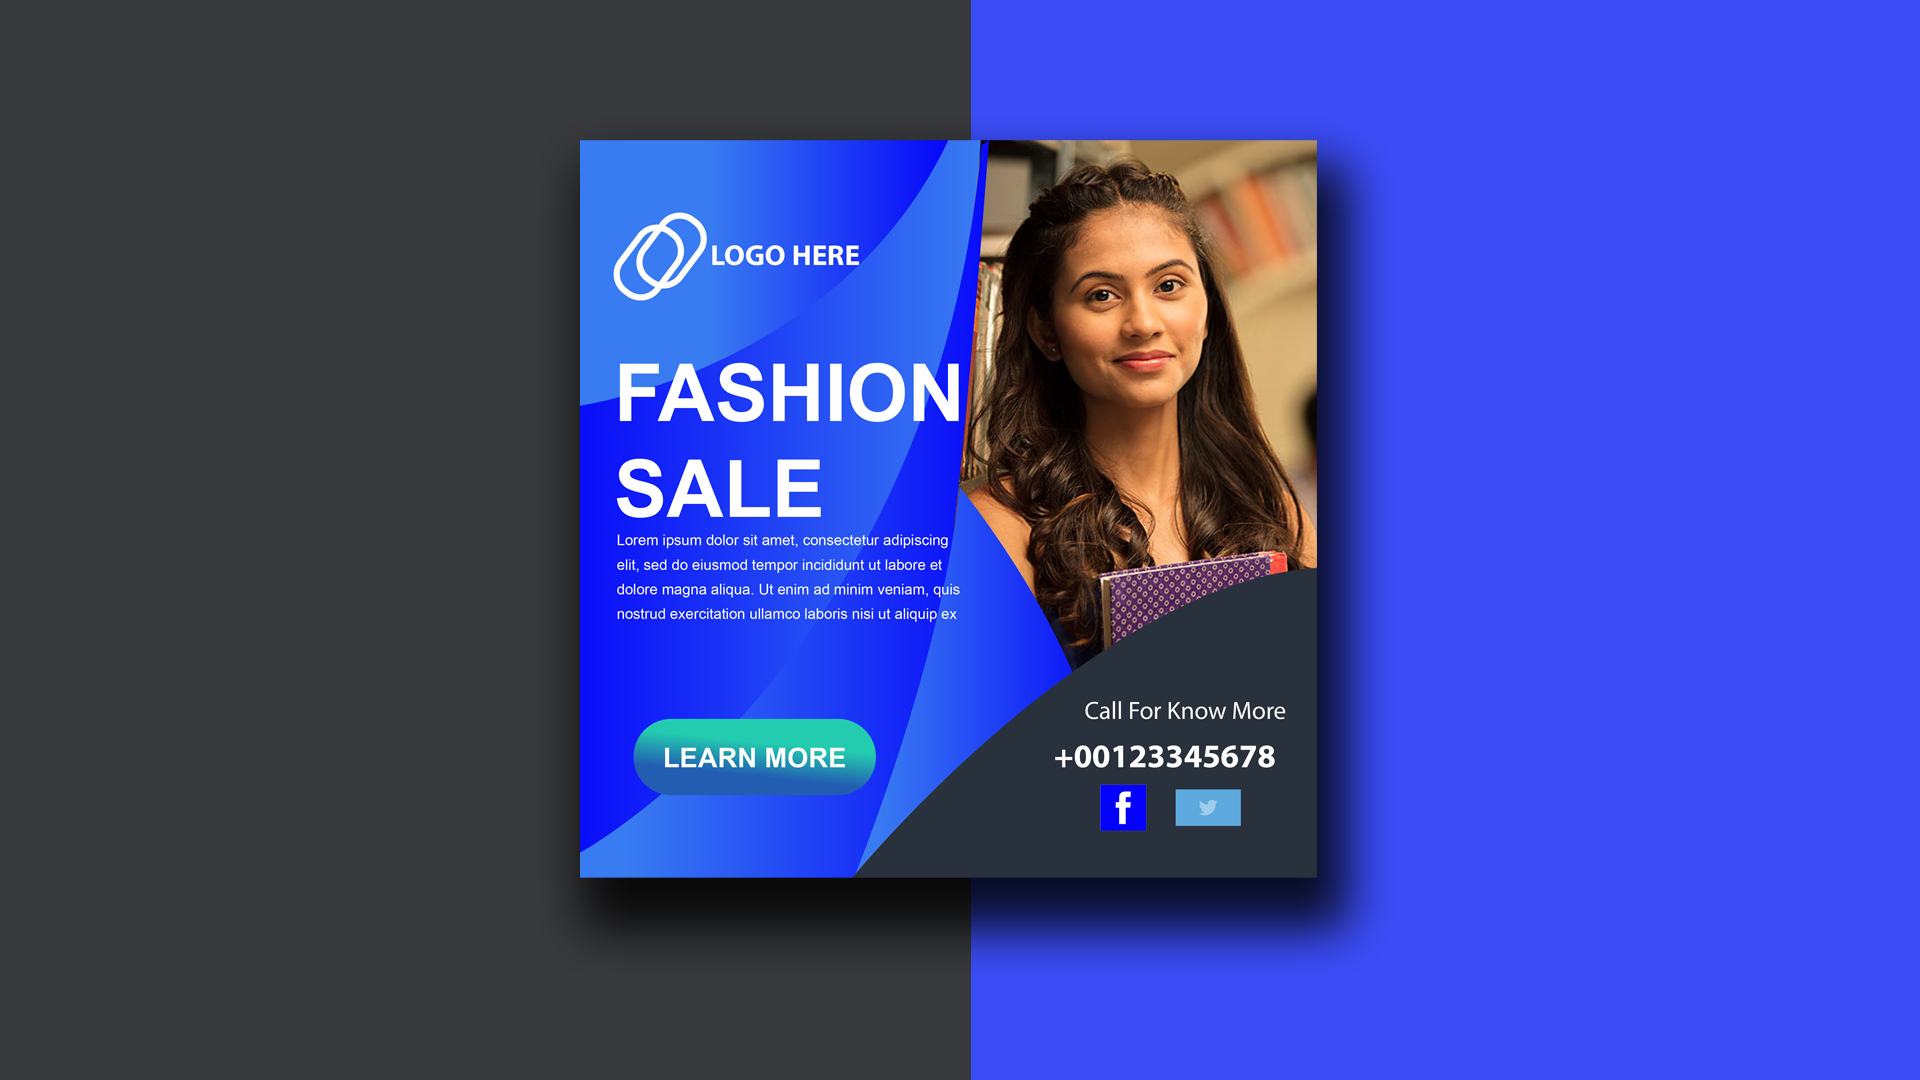 I will design web banner and social media post and for you